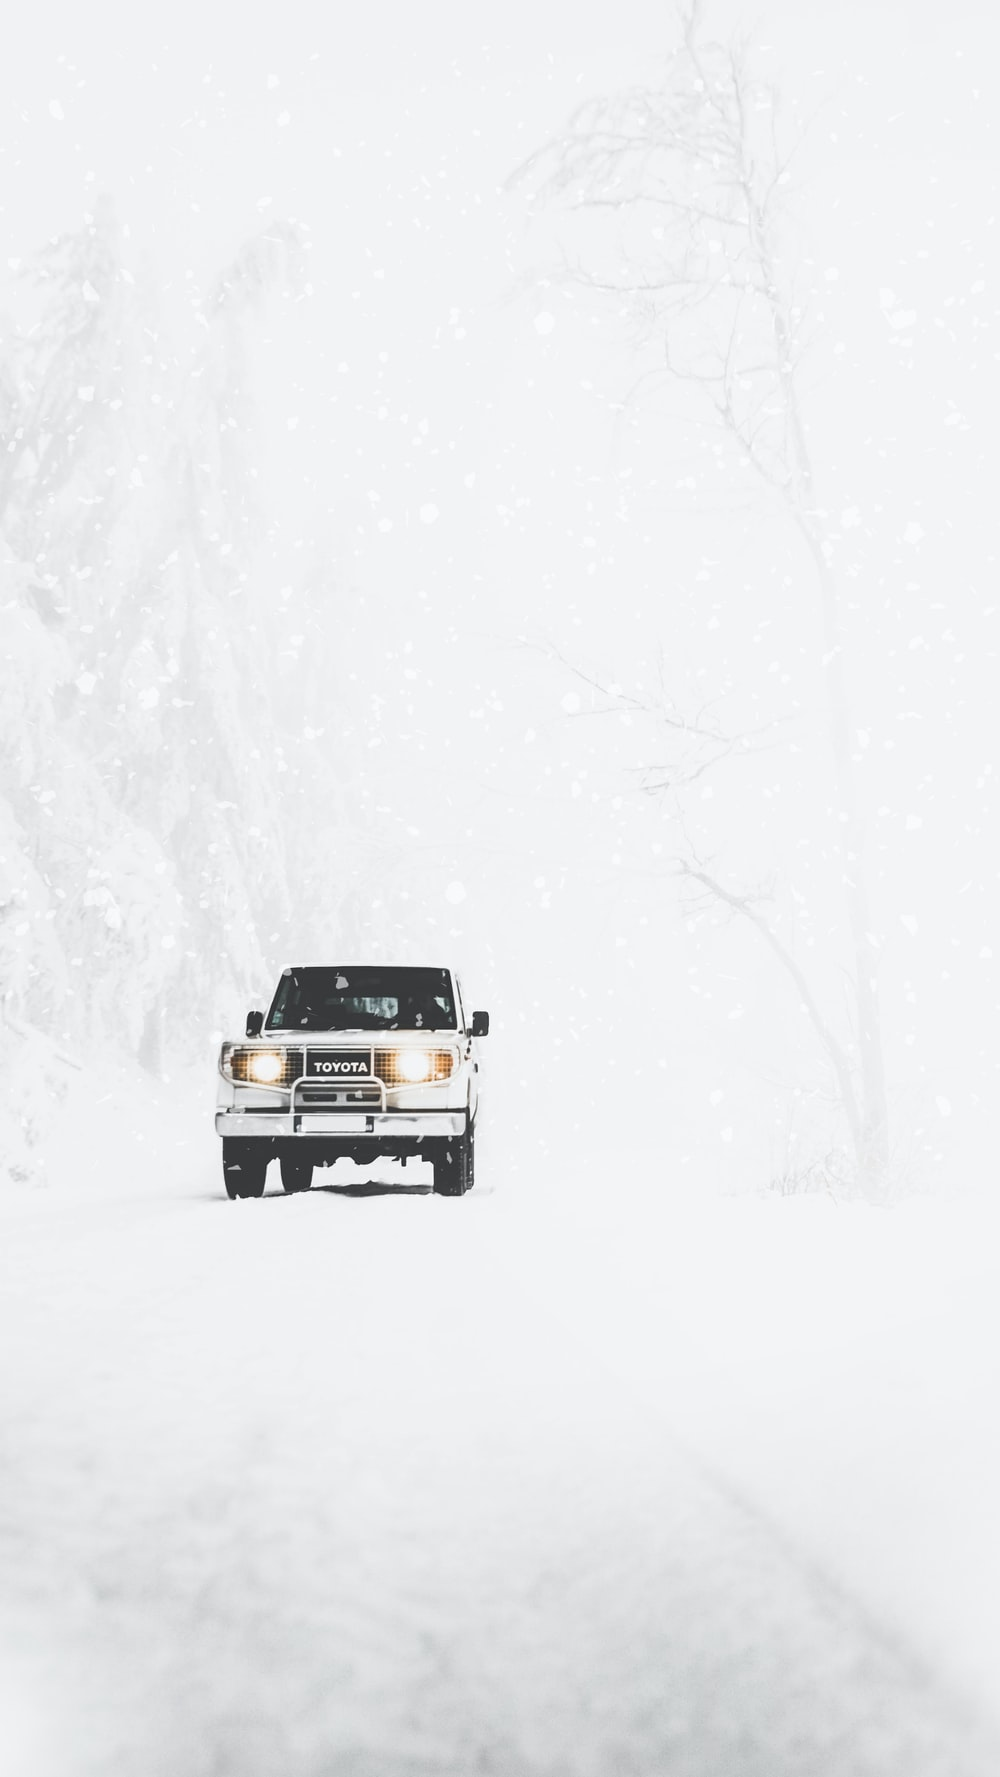 Toyota SUV covered with snow